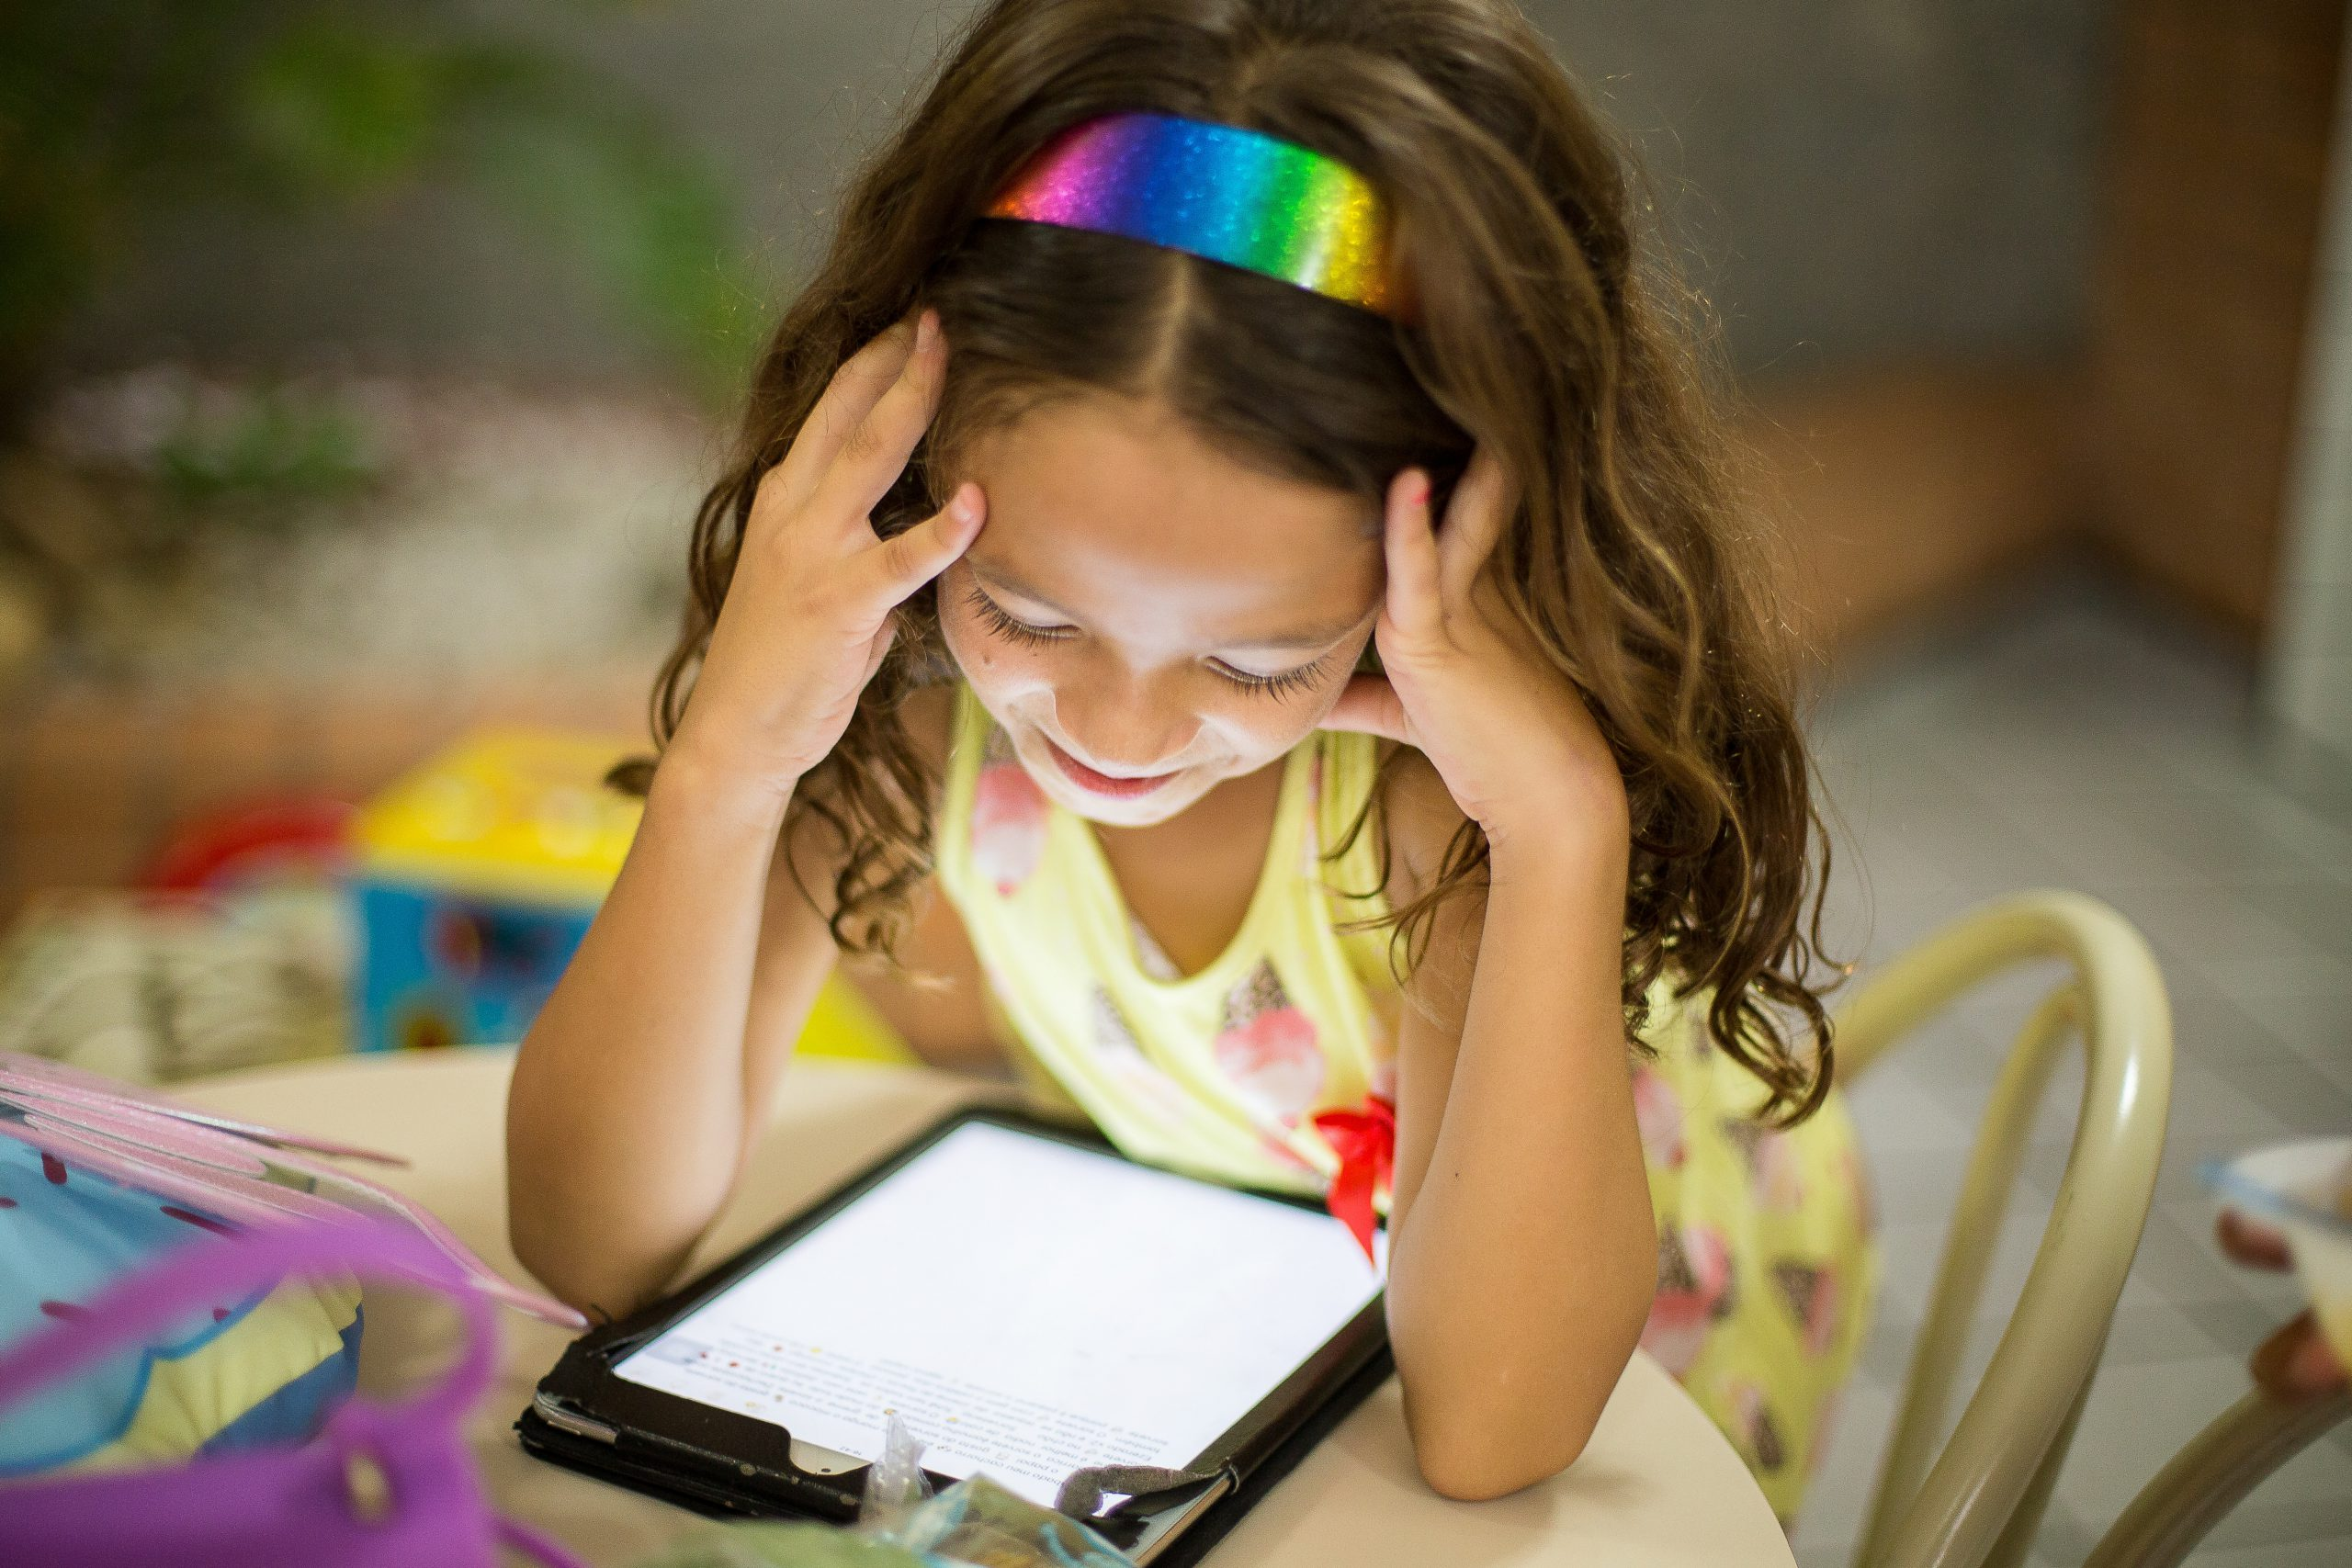 A Girl in yellow Sitting on chair and Reading the digital content from Tablet